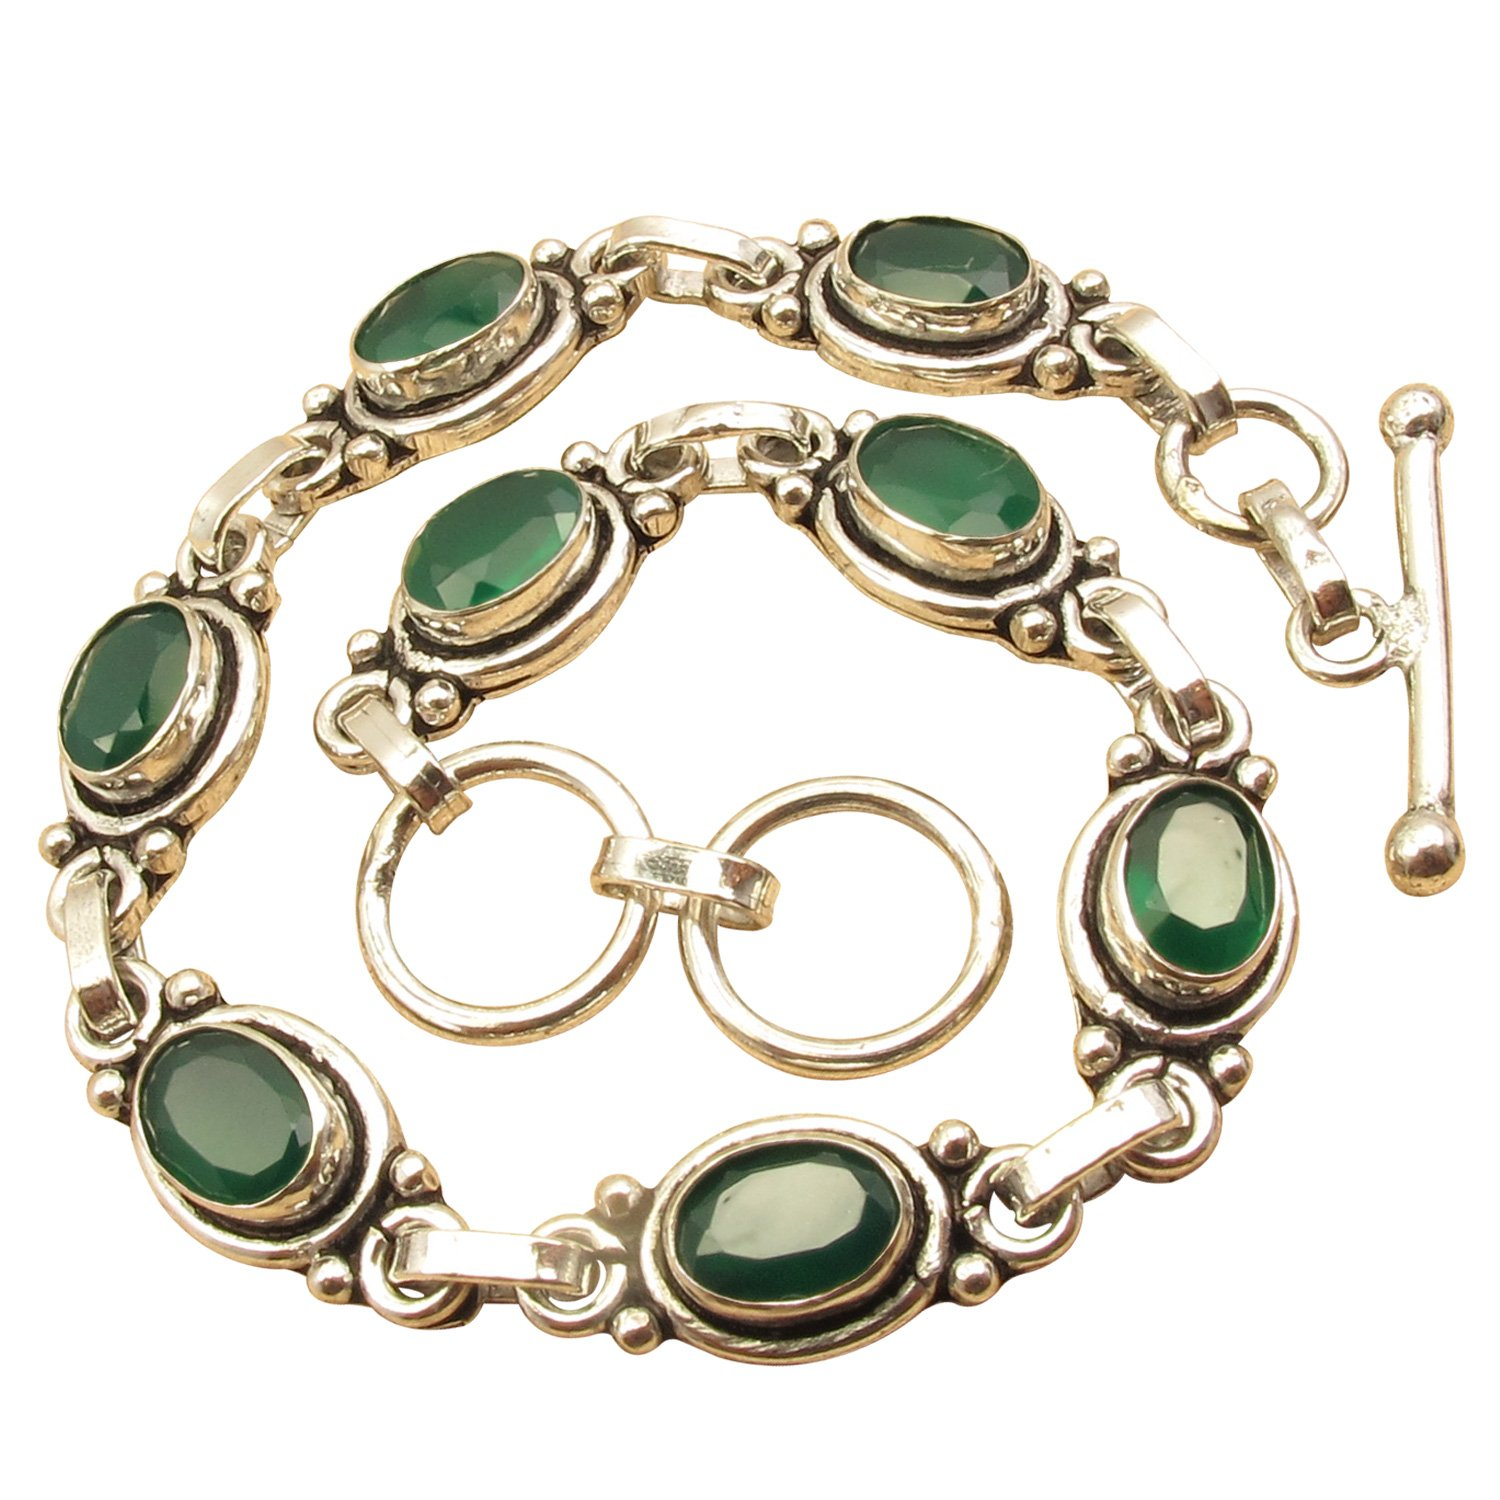 925 Sterling Silver Plated Dazzling Oval GREEN ONYX NOUVEAU Bracelet 20.3 cm Made In India NEW